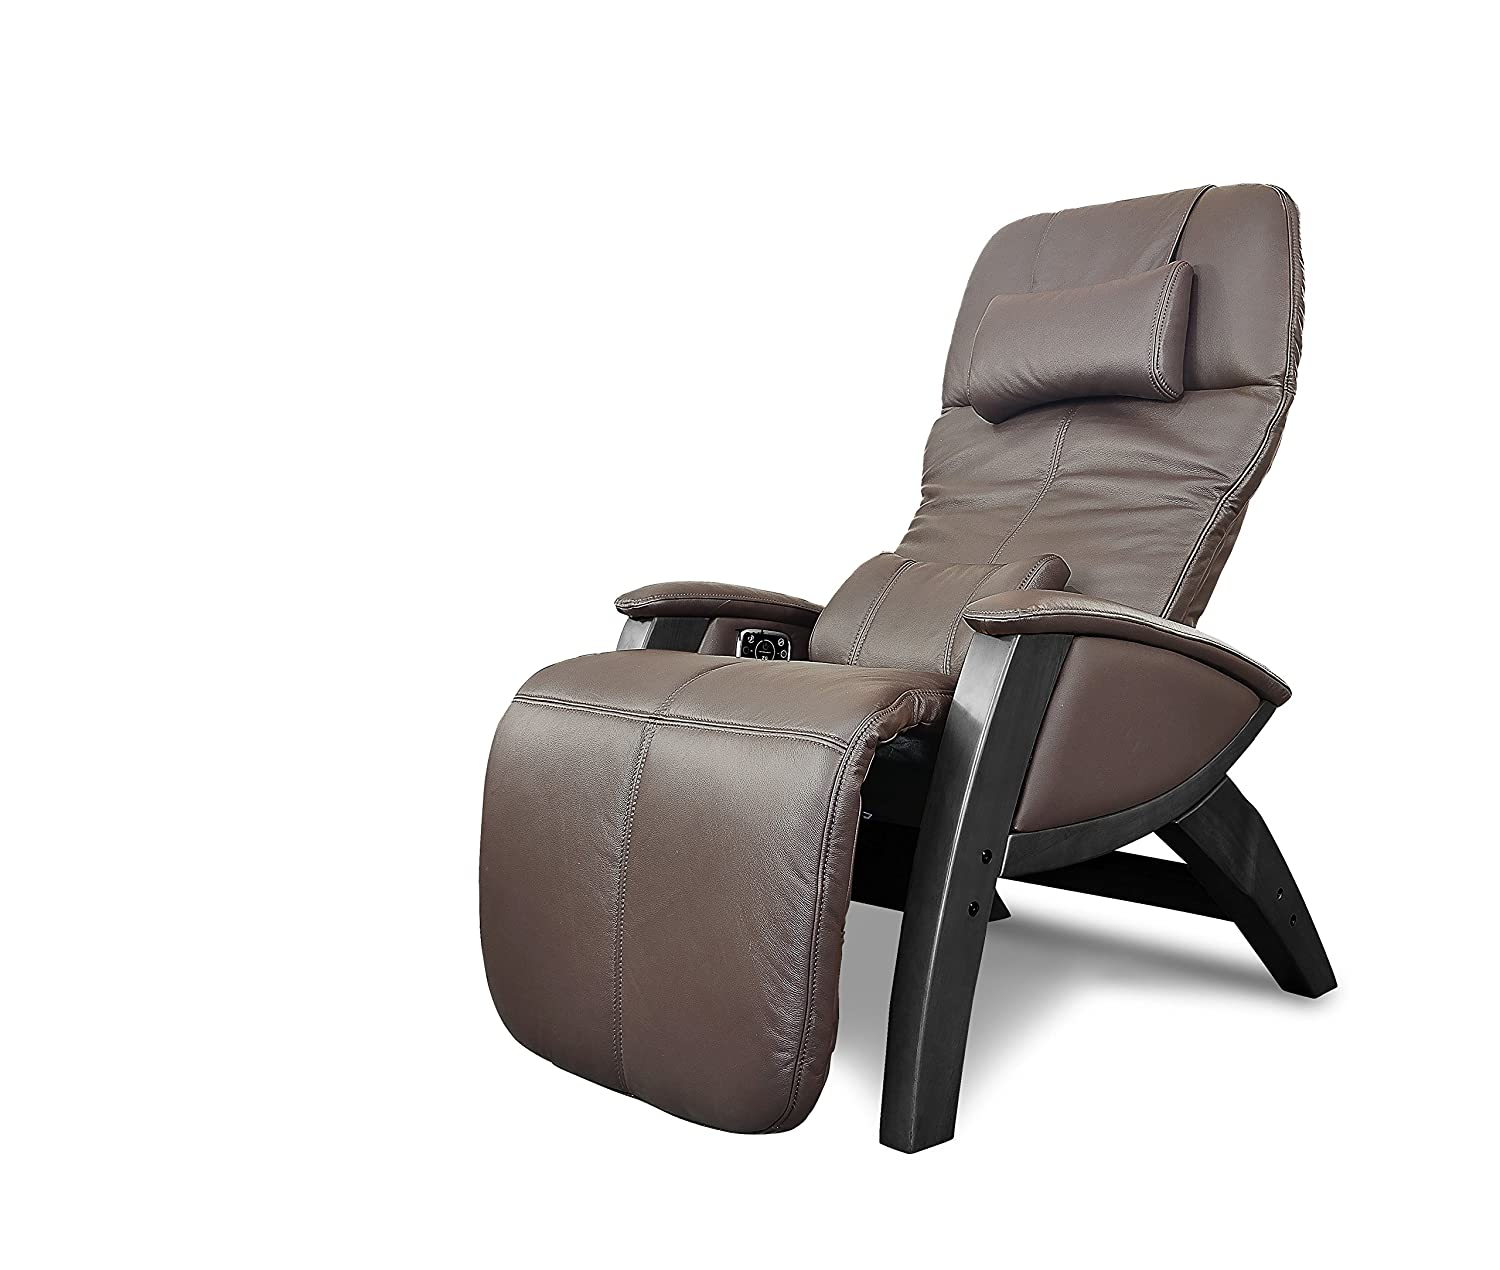 Top 3 Best Recliners For Sleeping Reviews Cuddly Home